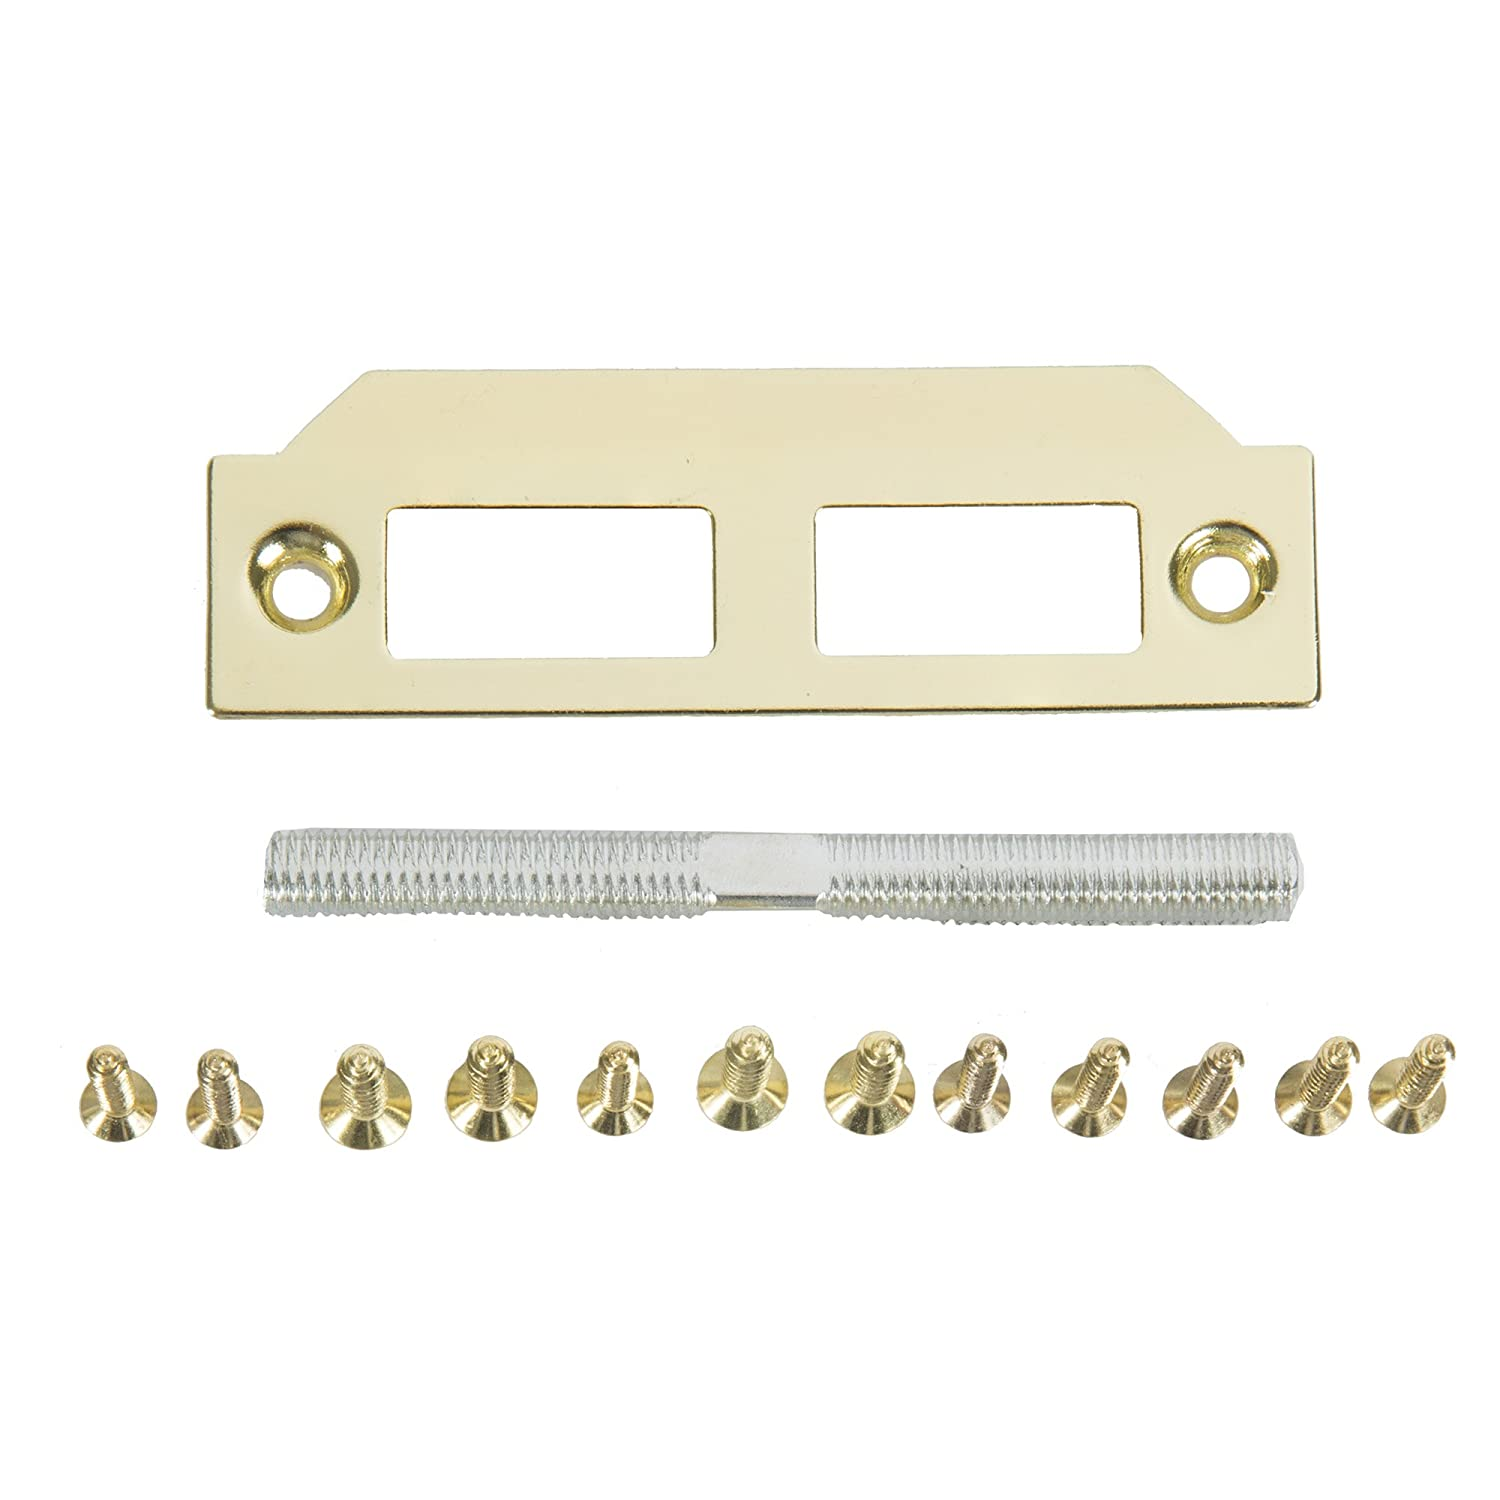 Old Time Mortise Lock Crystal Knob Set Skeleton - Cabinet And Furniture Hinges - Amazon.com